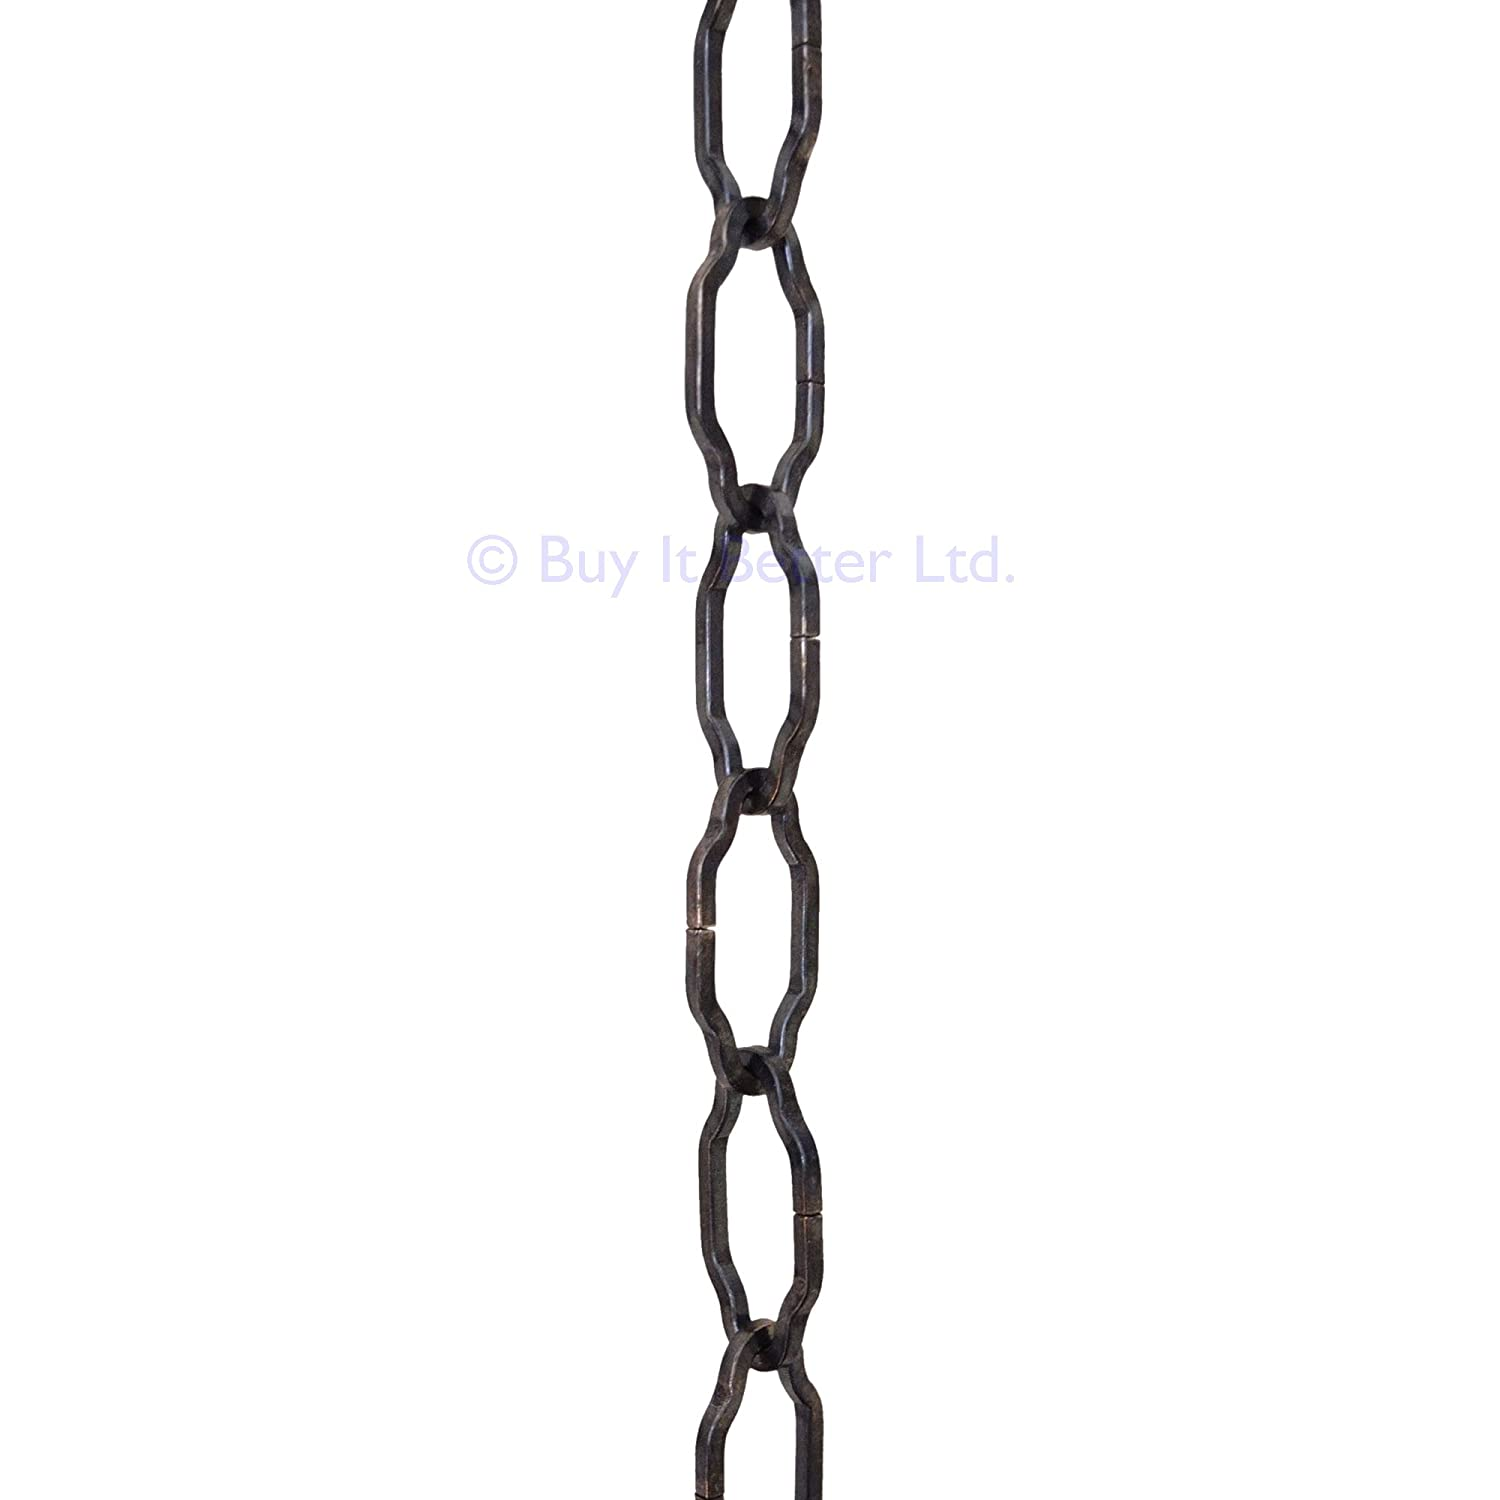 2m antique brass open link chain for chandelier lighting 2m antique brass open link chain for chandelier lighting 29x15mm ch 8 amazon lighting arubaitofo Gallery